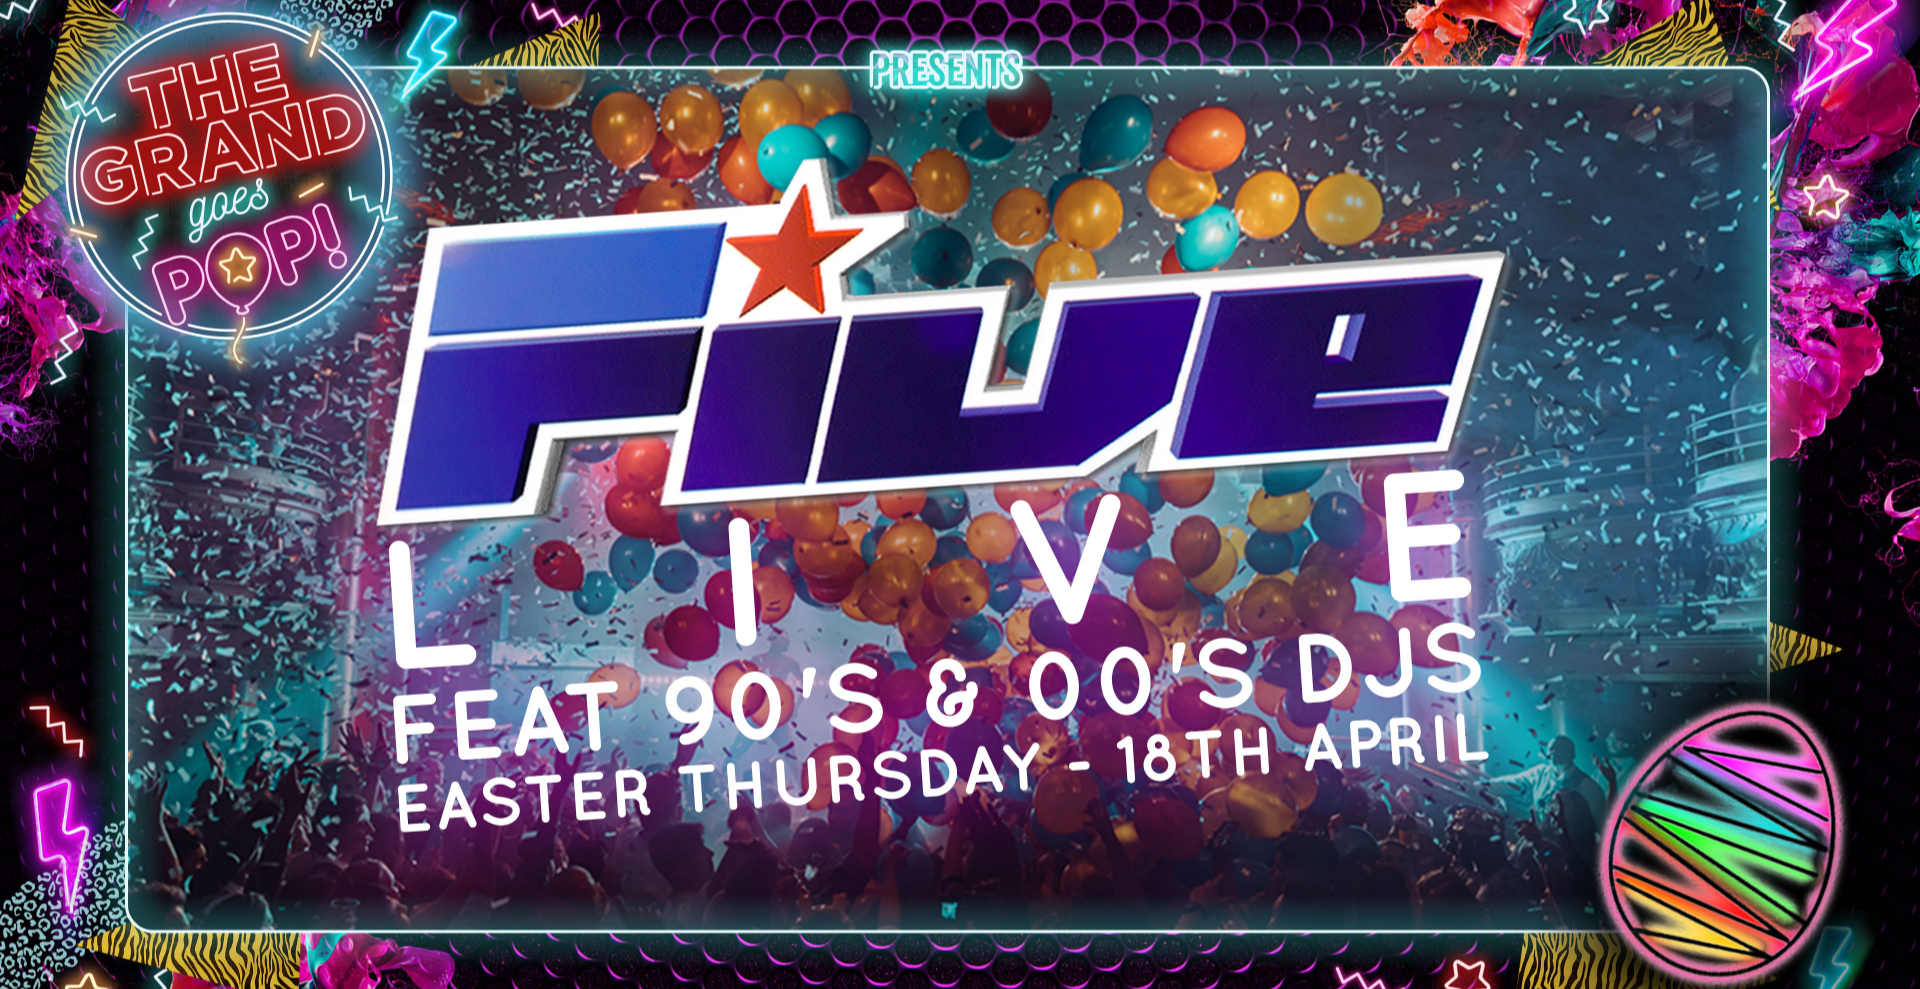 5ive LIVE feat 90's & 00's DJs - Easter Thursday Special